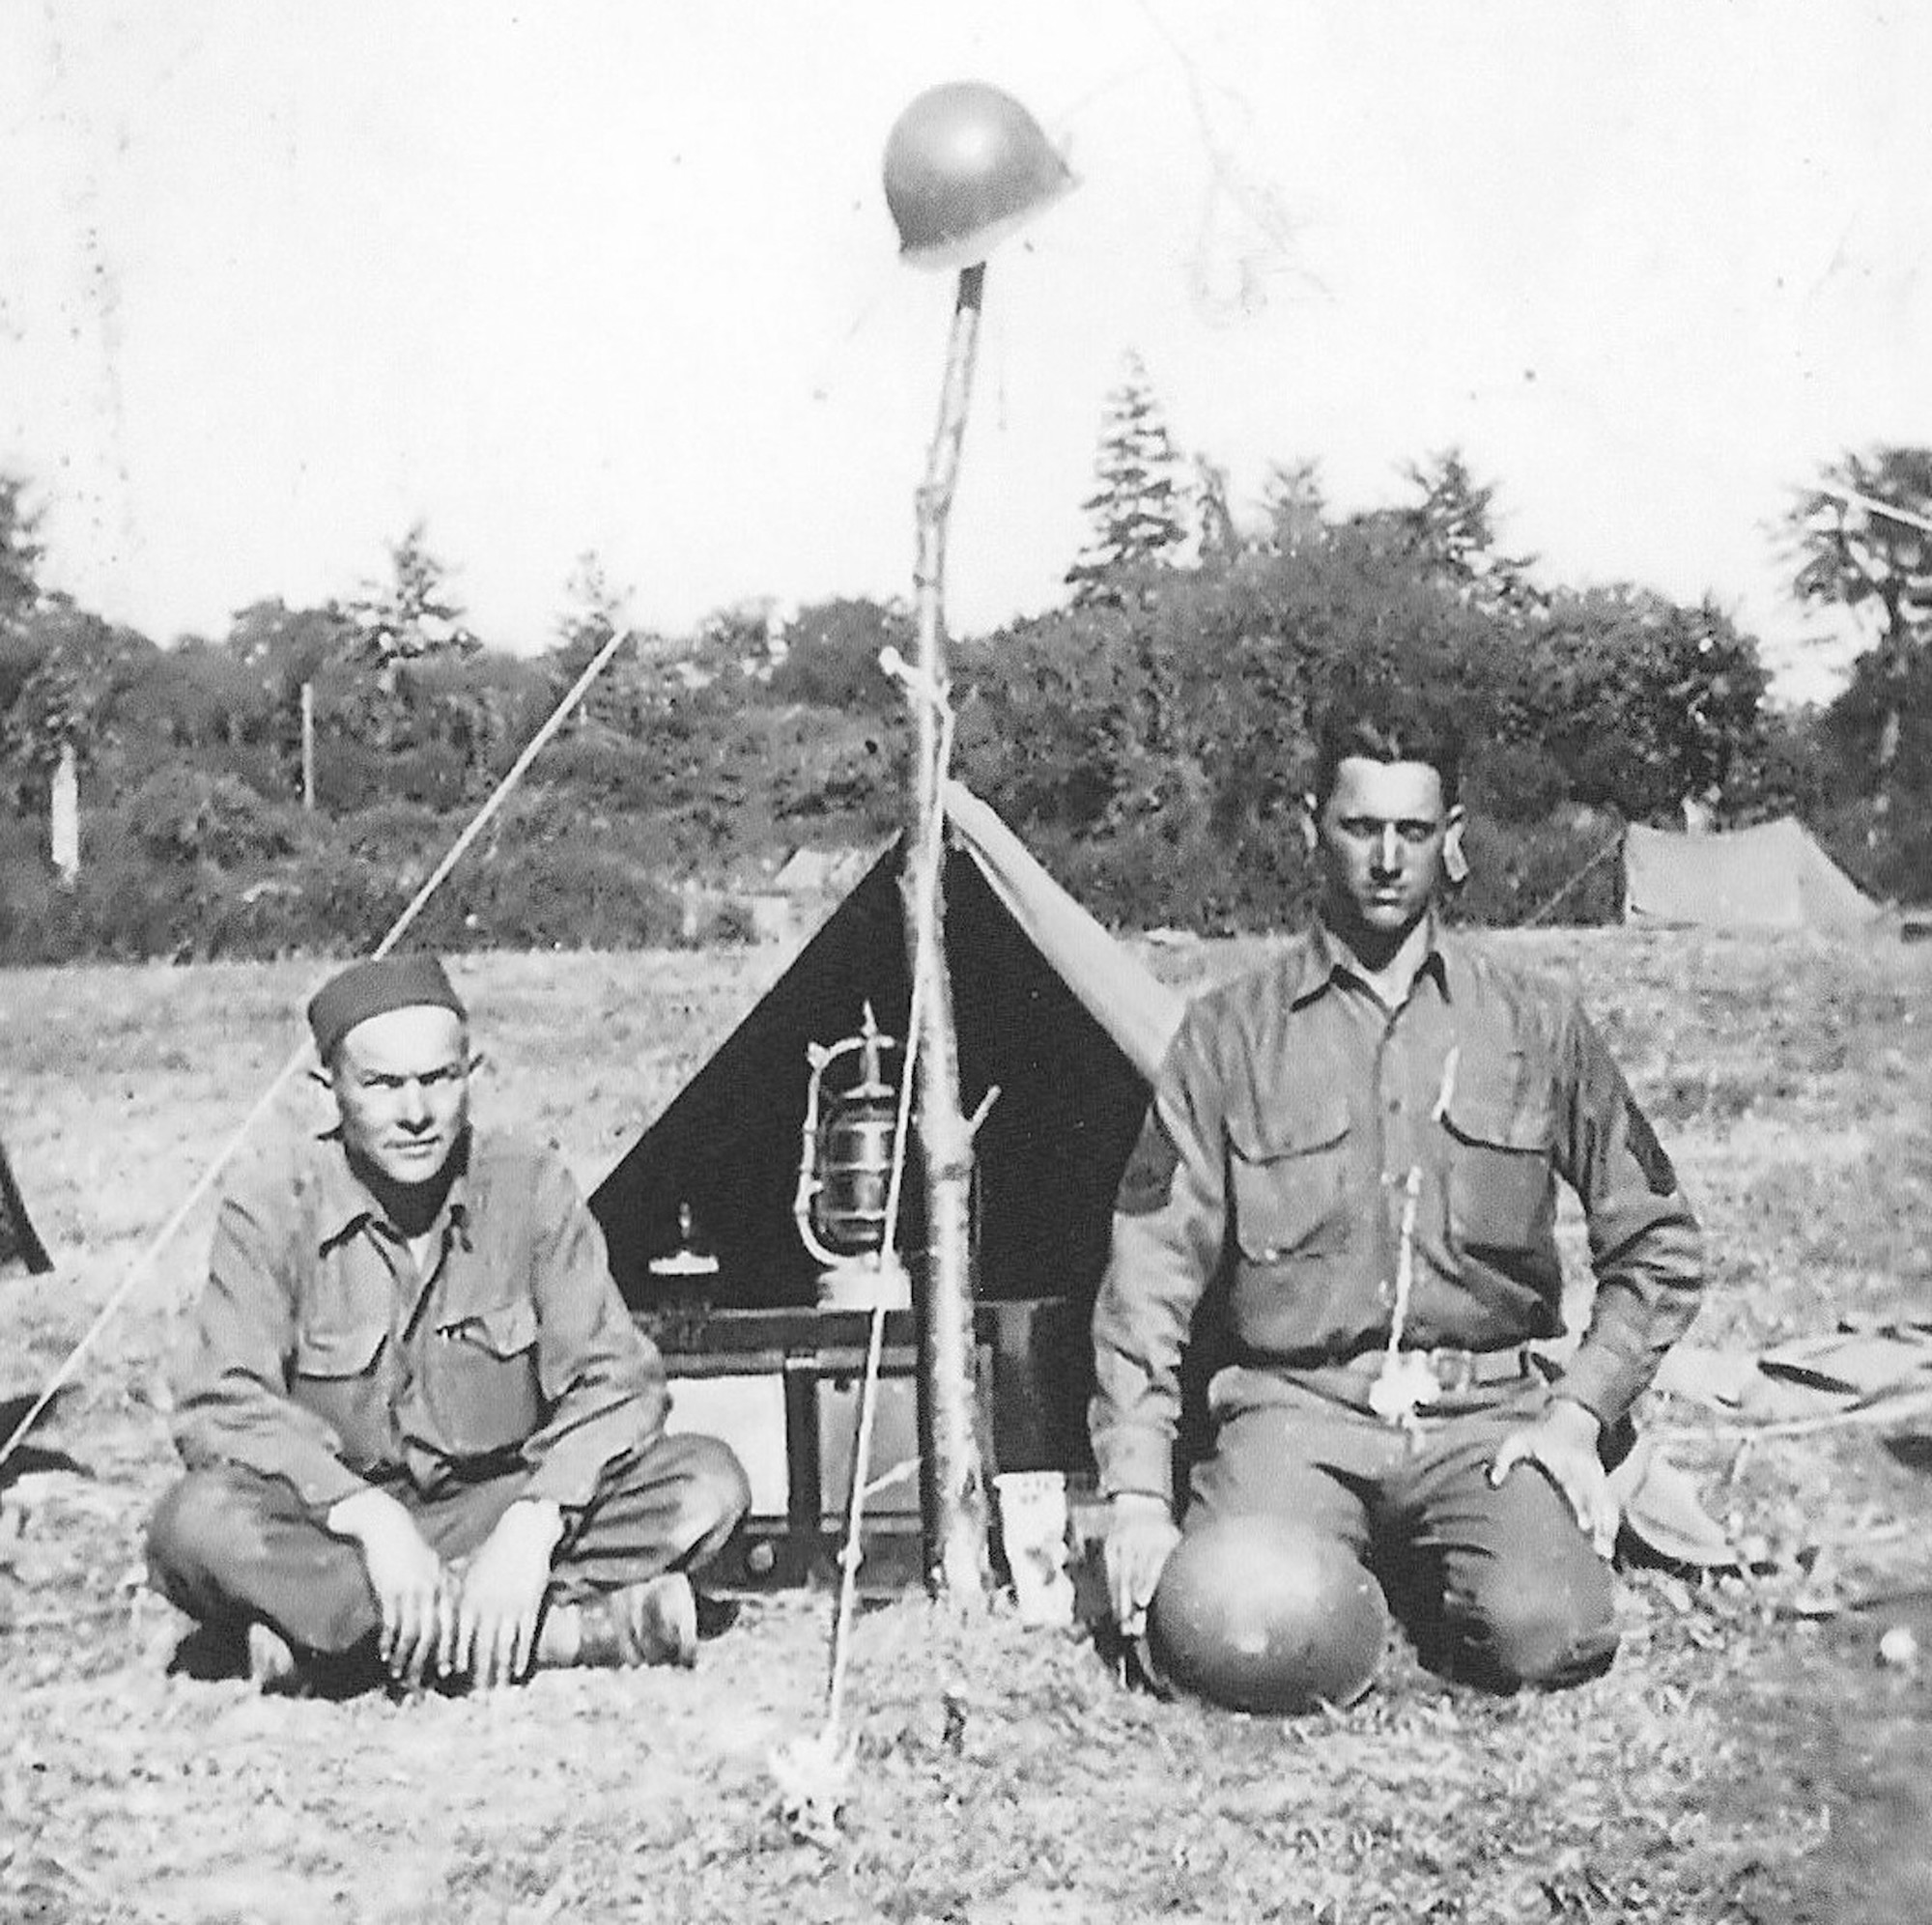 Sim Wright, right, camps in France in 1944 during World War II.